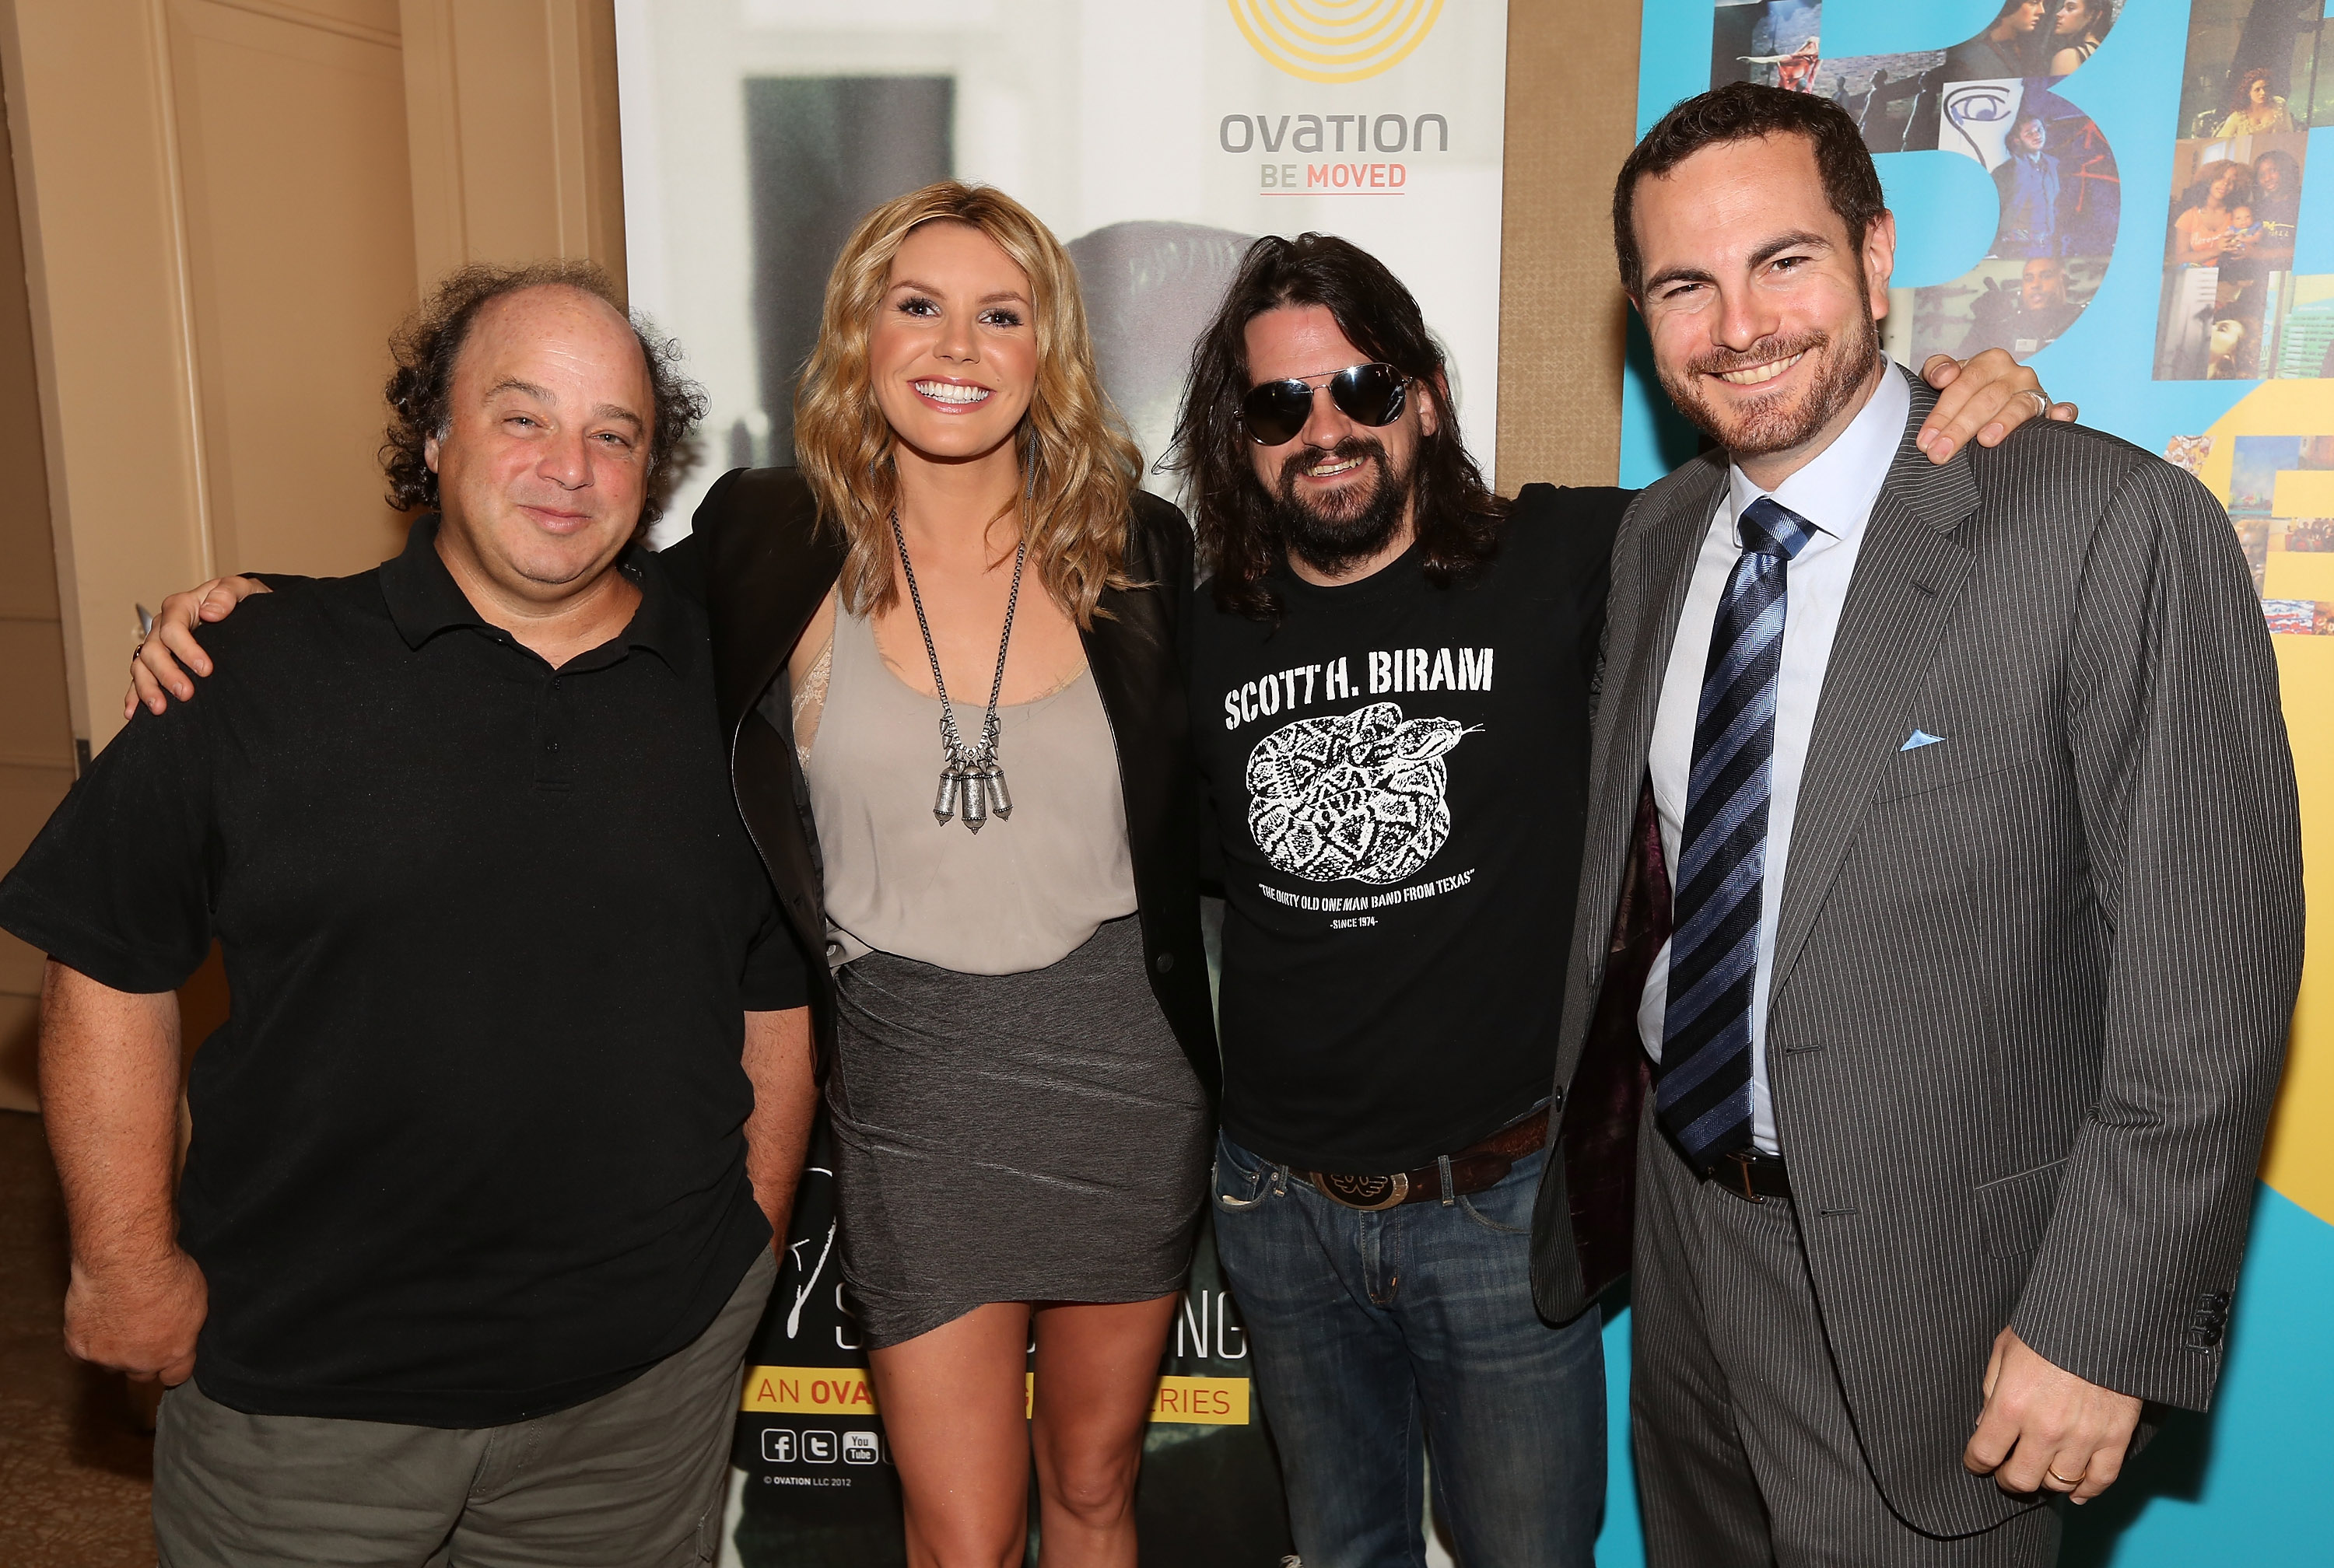 Ovation Presentation At The Television Critics Association Summer Tour